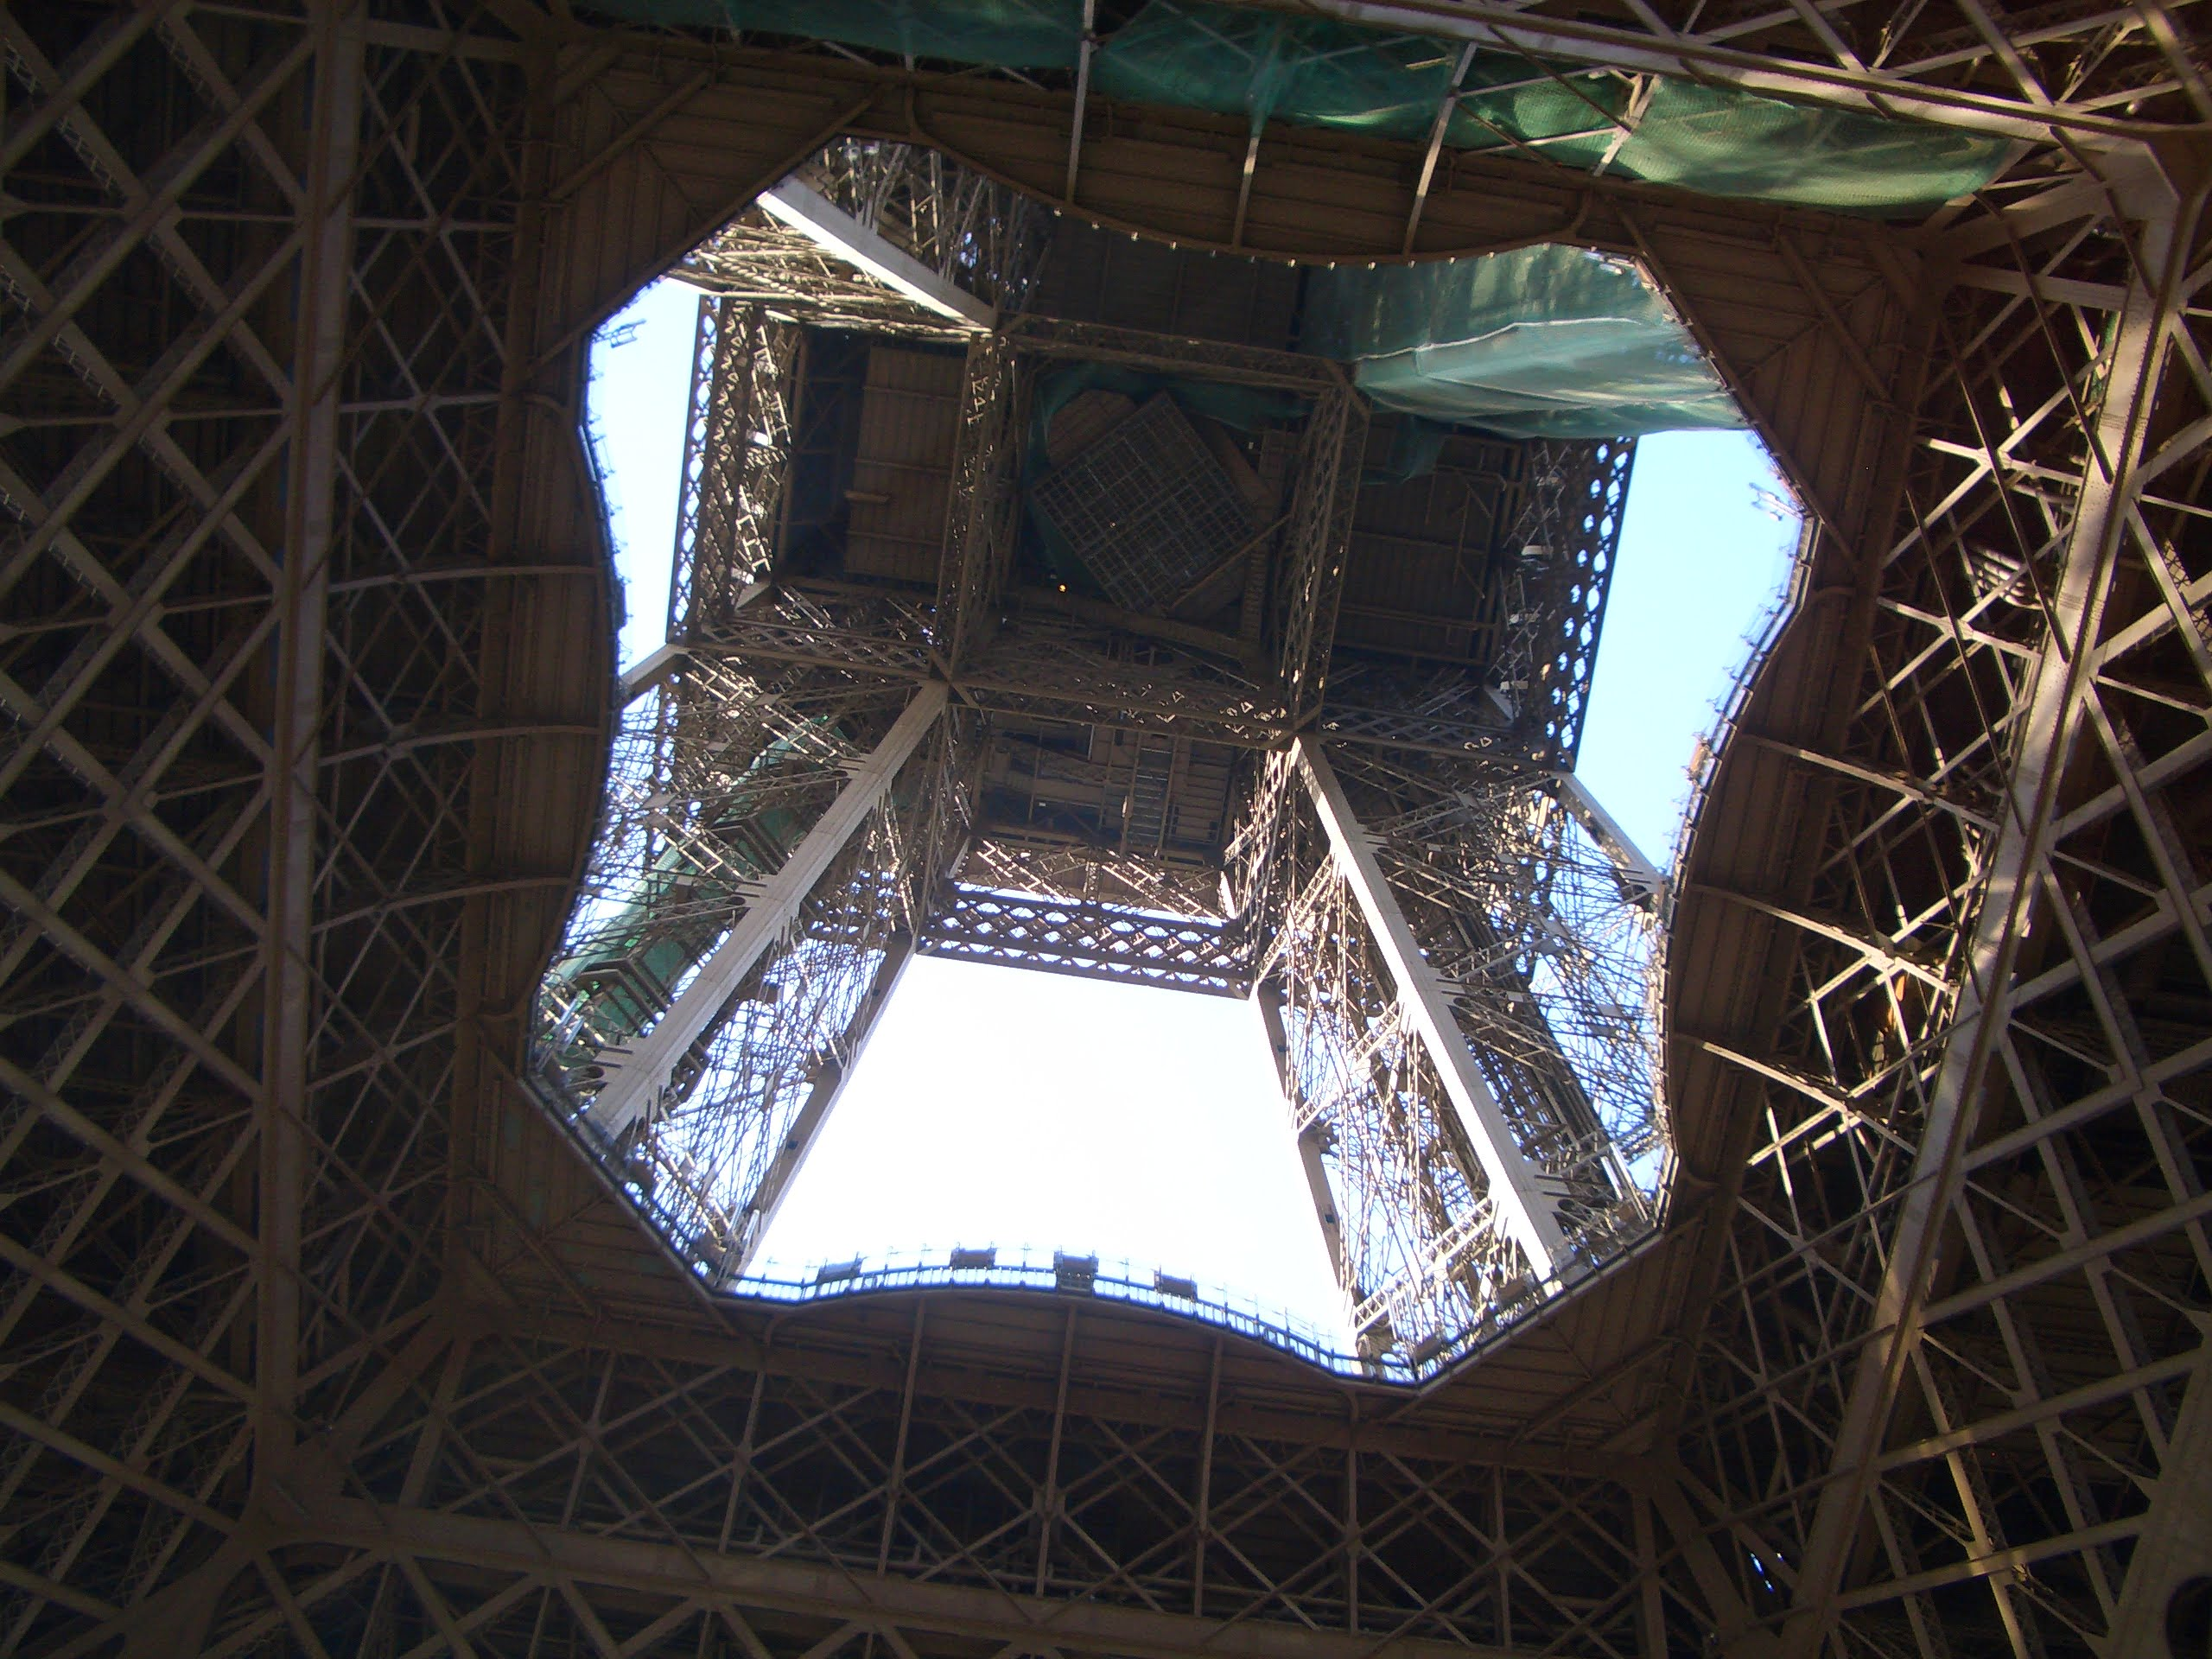 TOUR EIFFEL, AIR FRANCE. QUANDO ANDARE A PARIGI